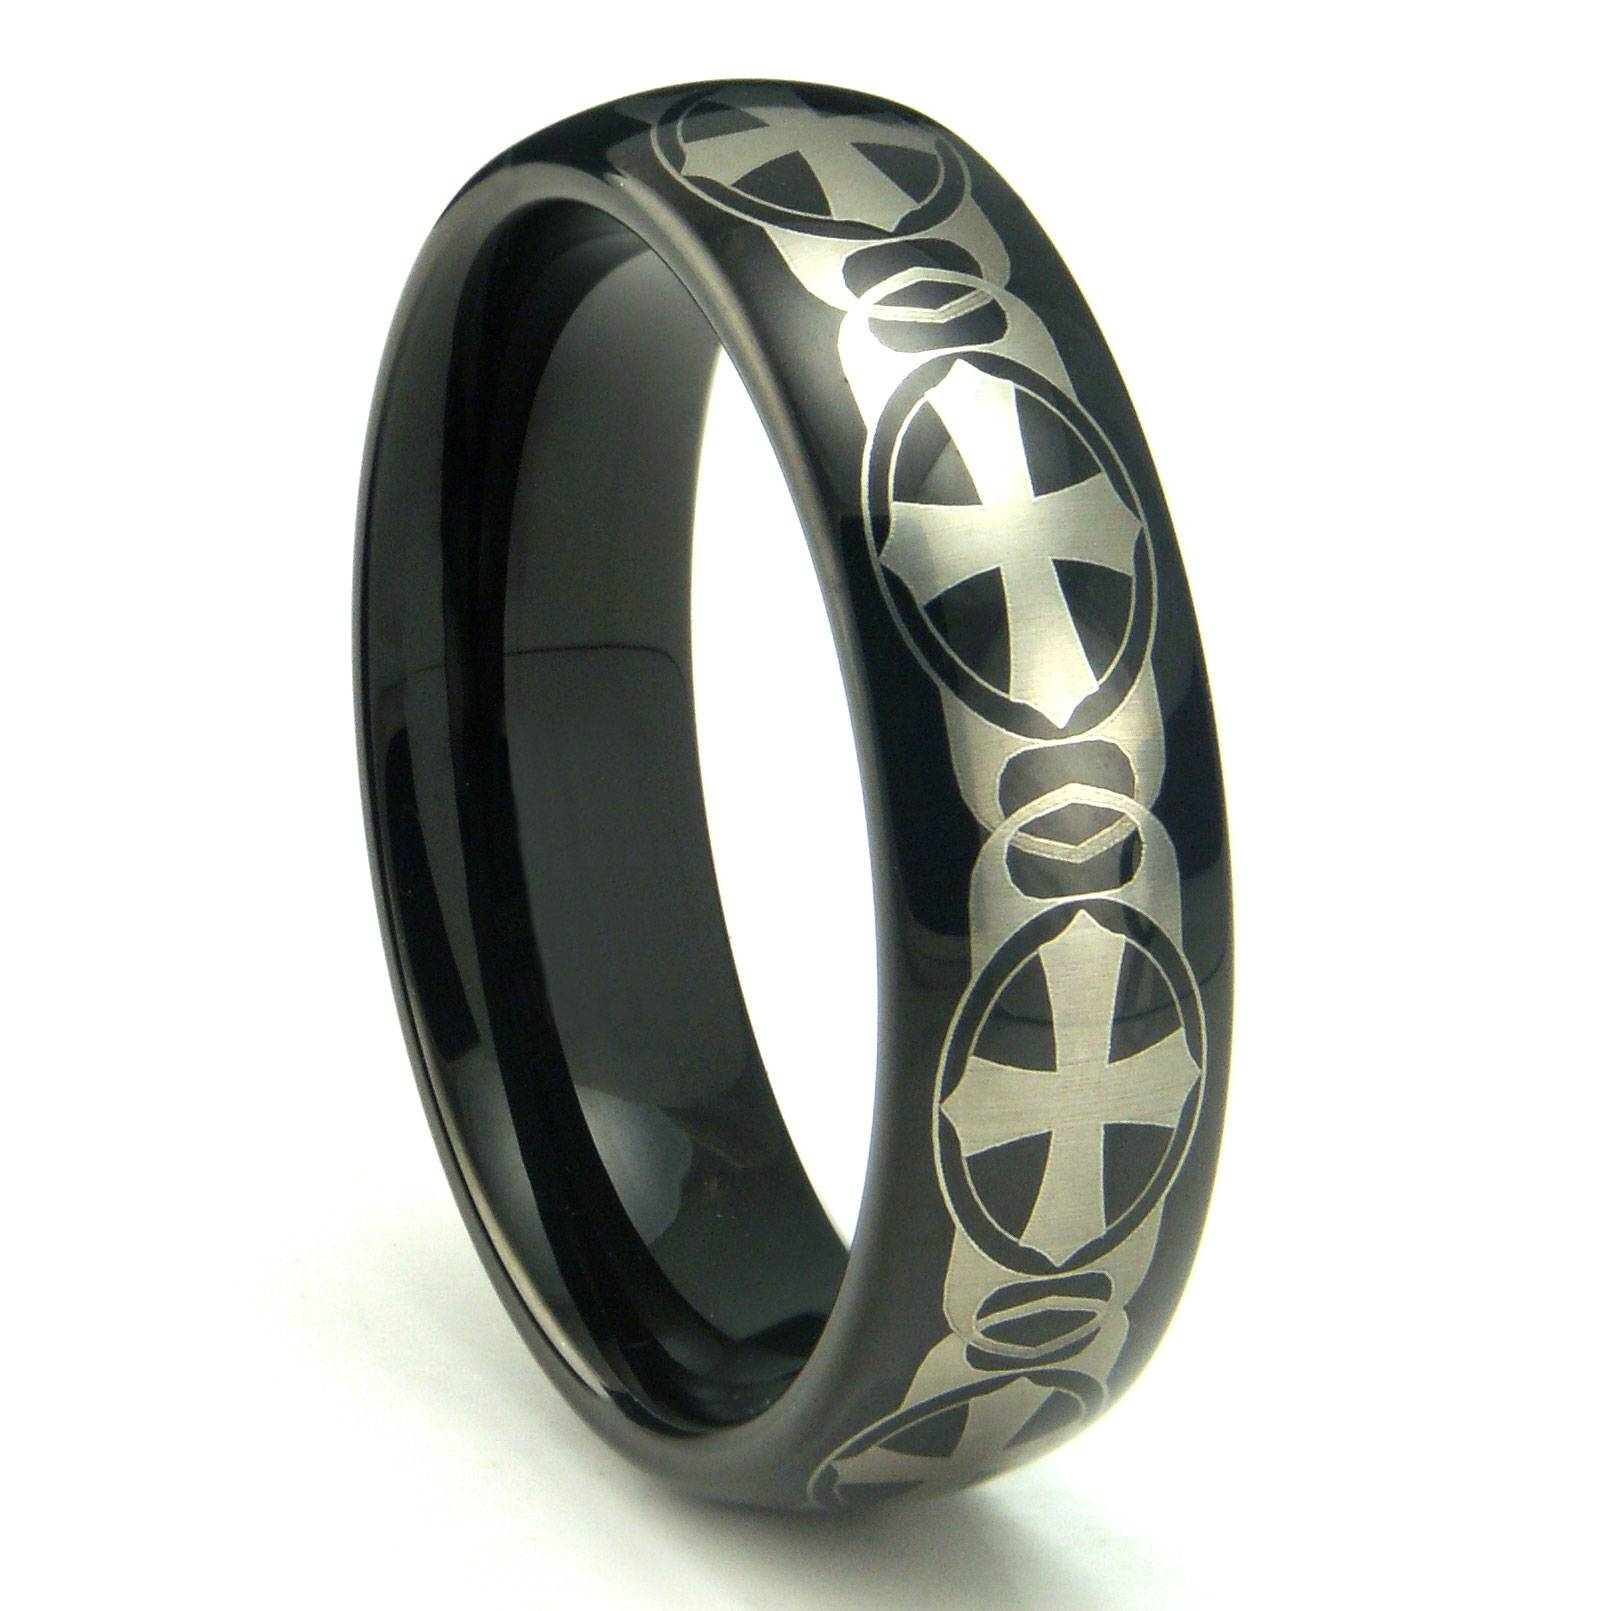 Black Tungsten Carbide Laser Engraved Celtic Cross Dome Wedding With Regard To Men's Wedding Bands With Cross (View 1 of 15)